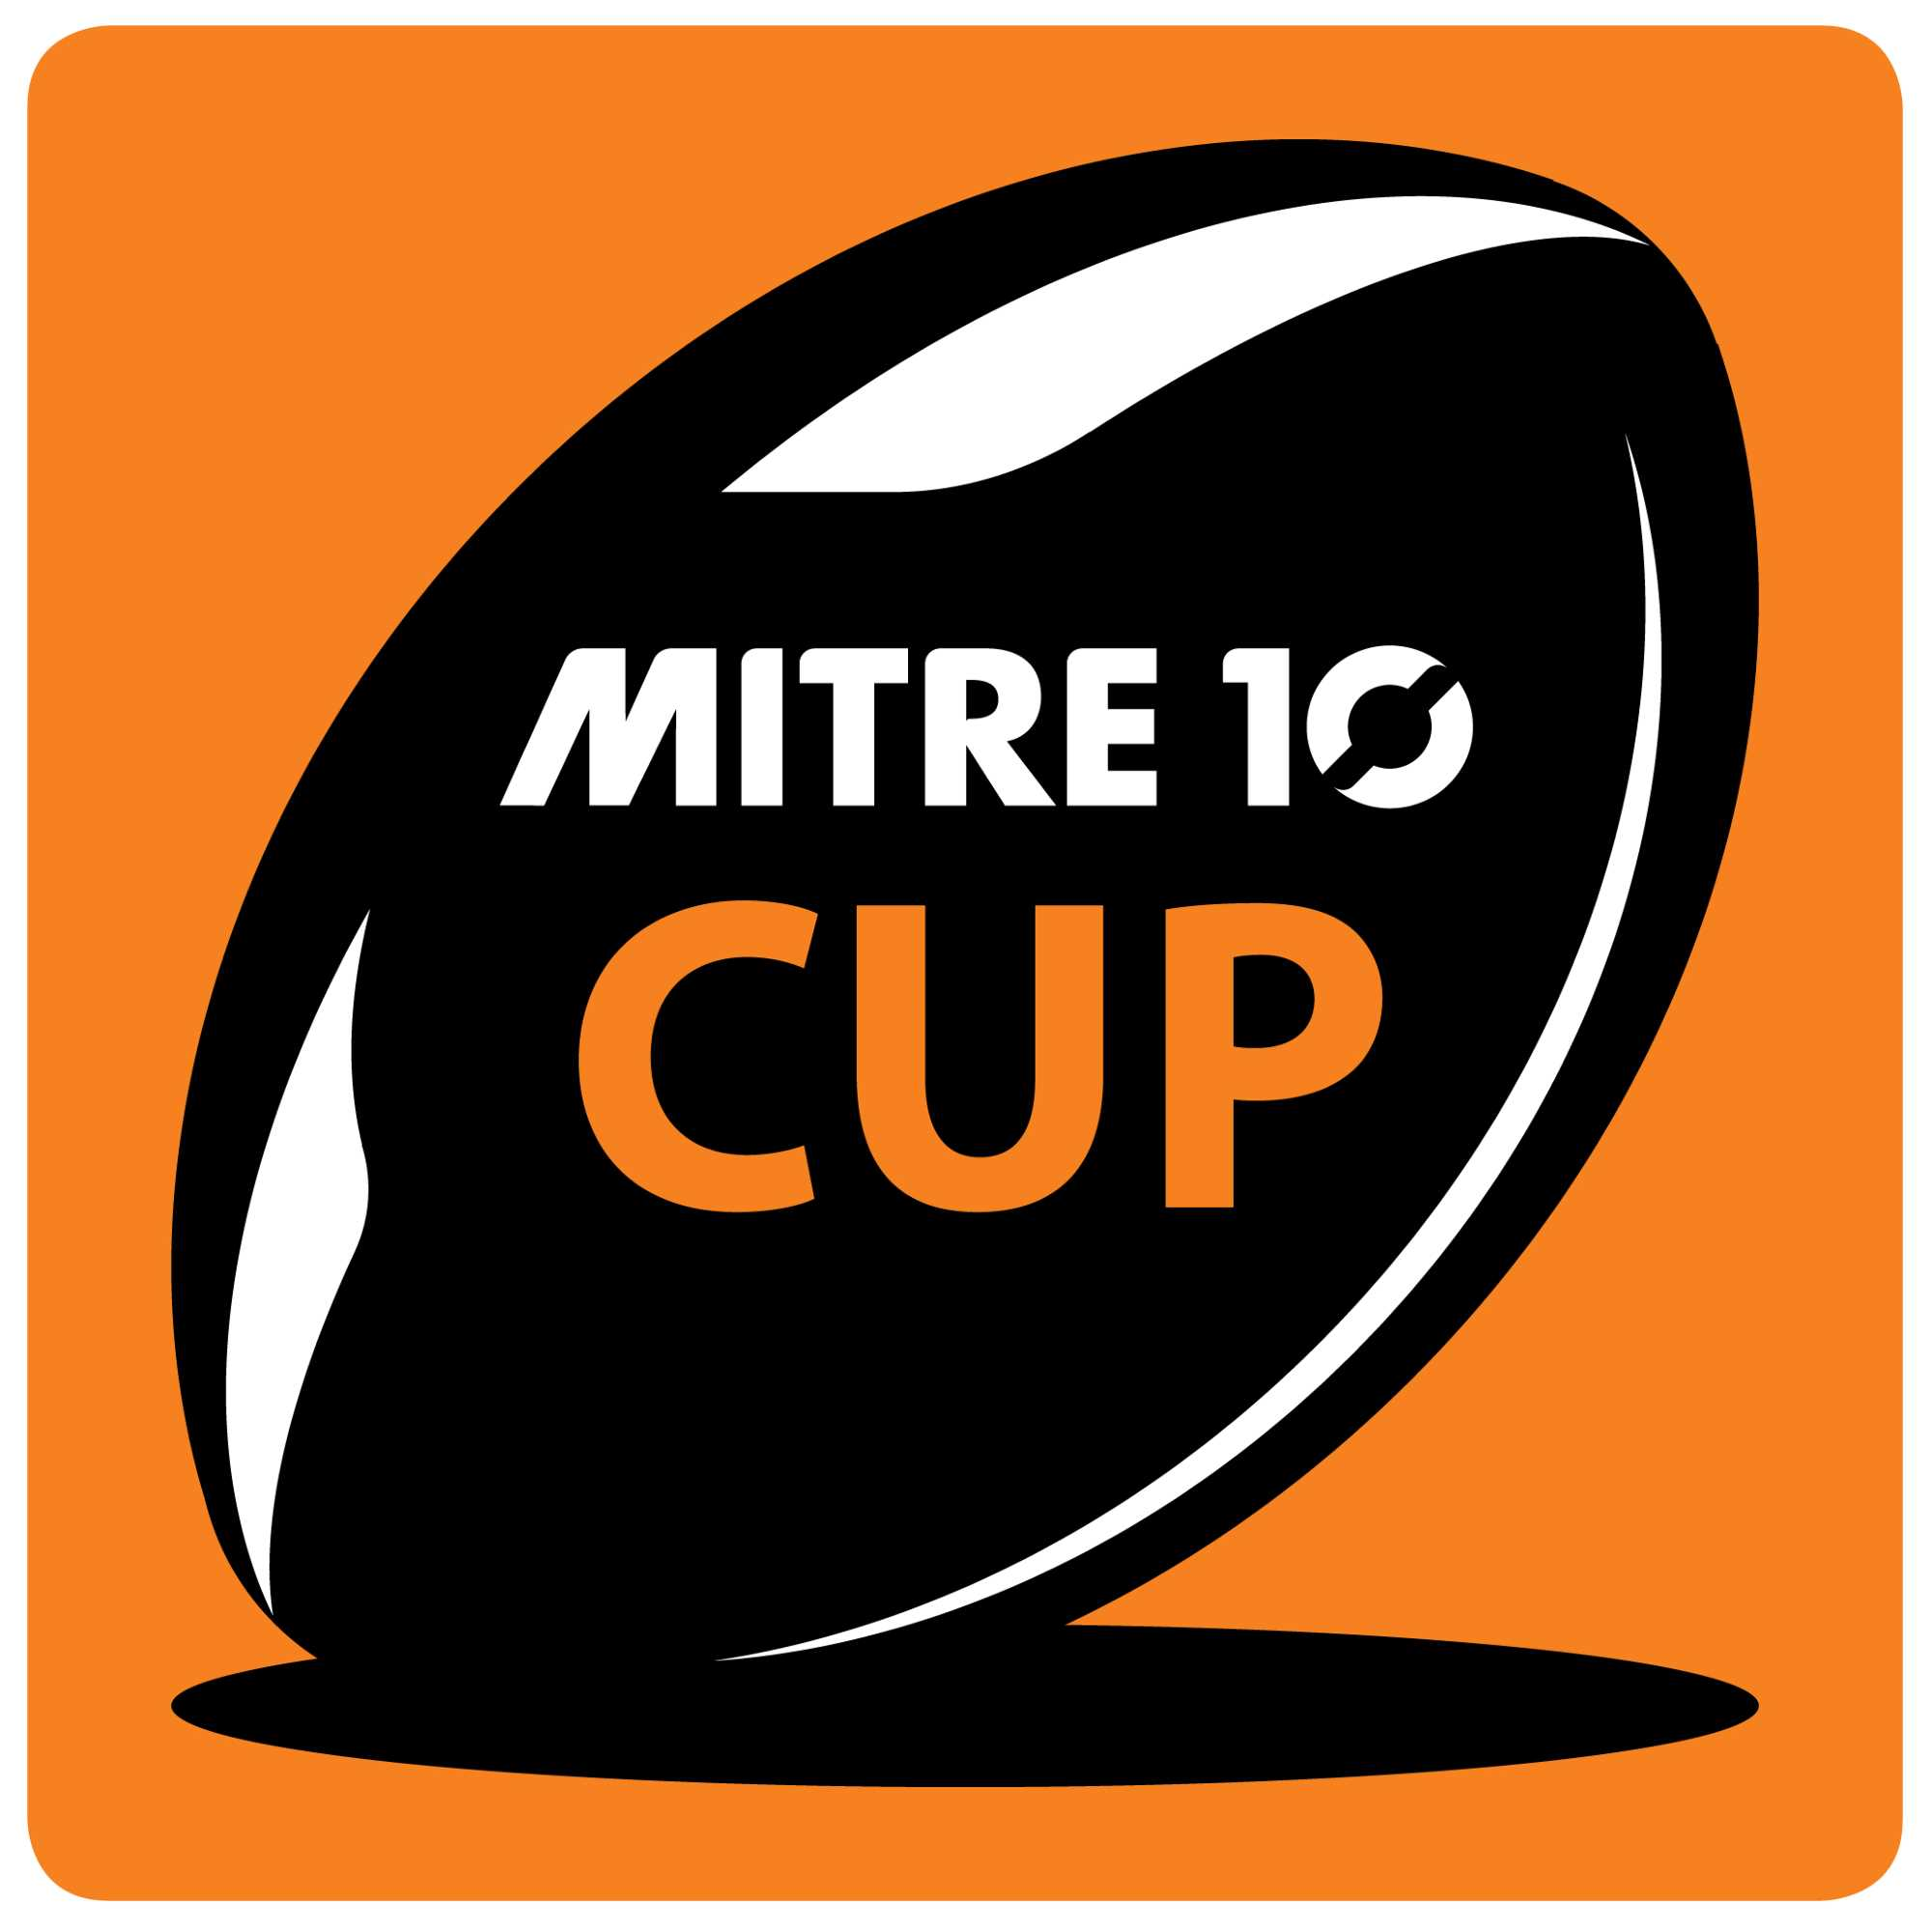 c568b696d96 2018 Mitre 10 Cup Draw announced